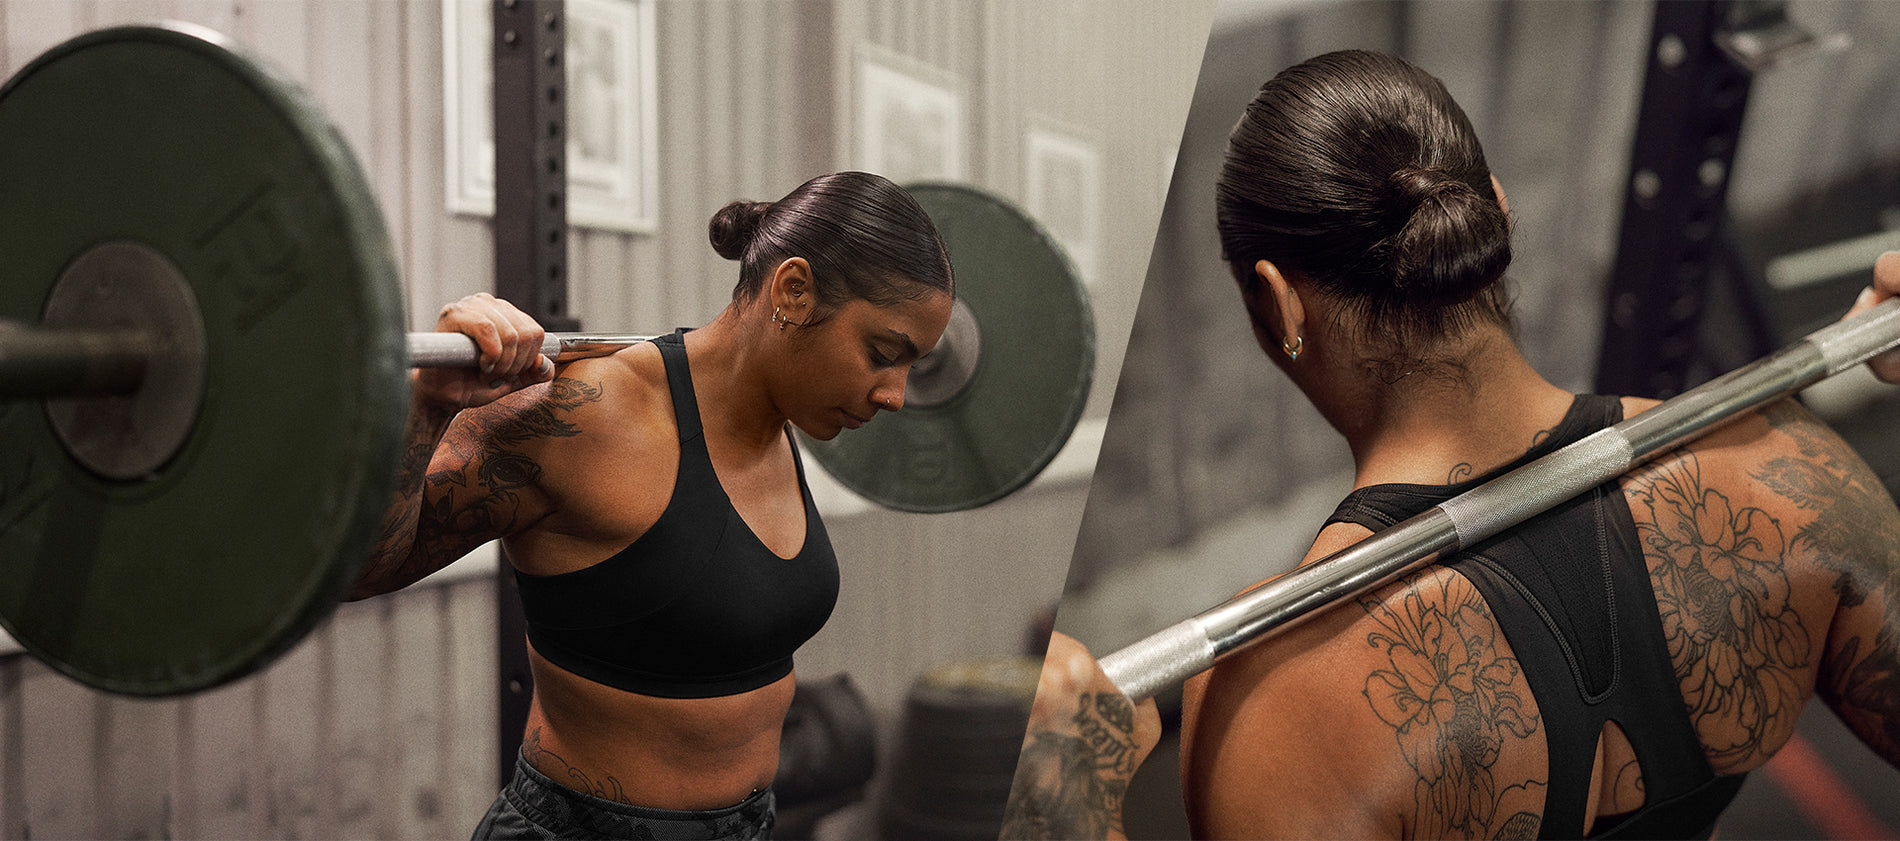 Female Gymshark Athletes lifting and posing in the new Power collection.